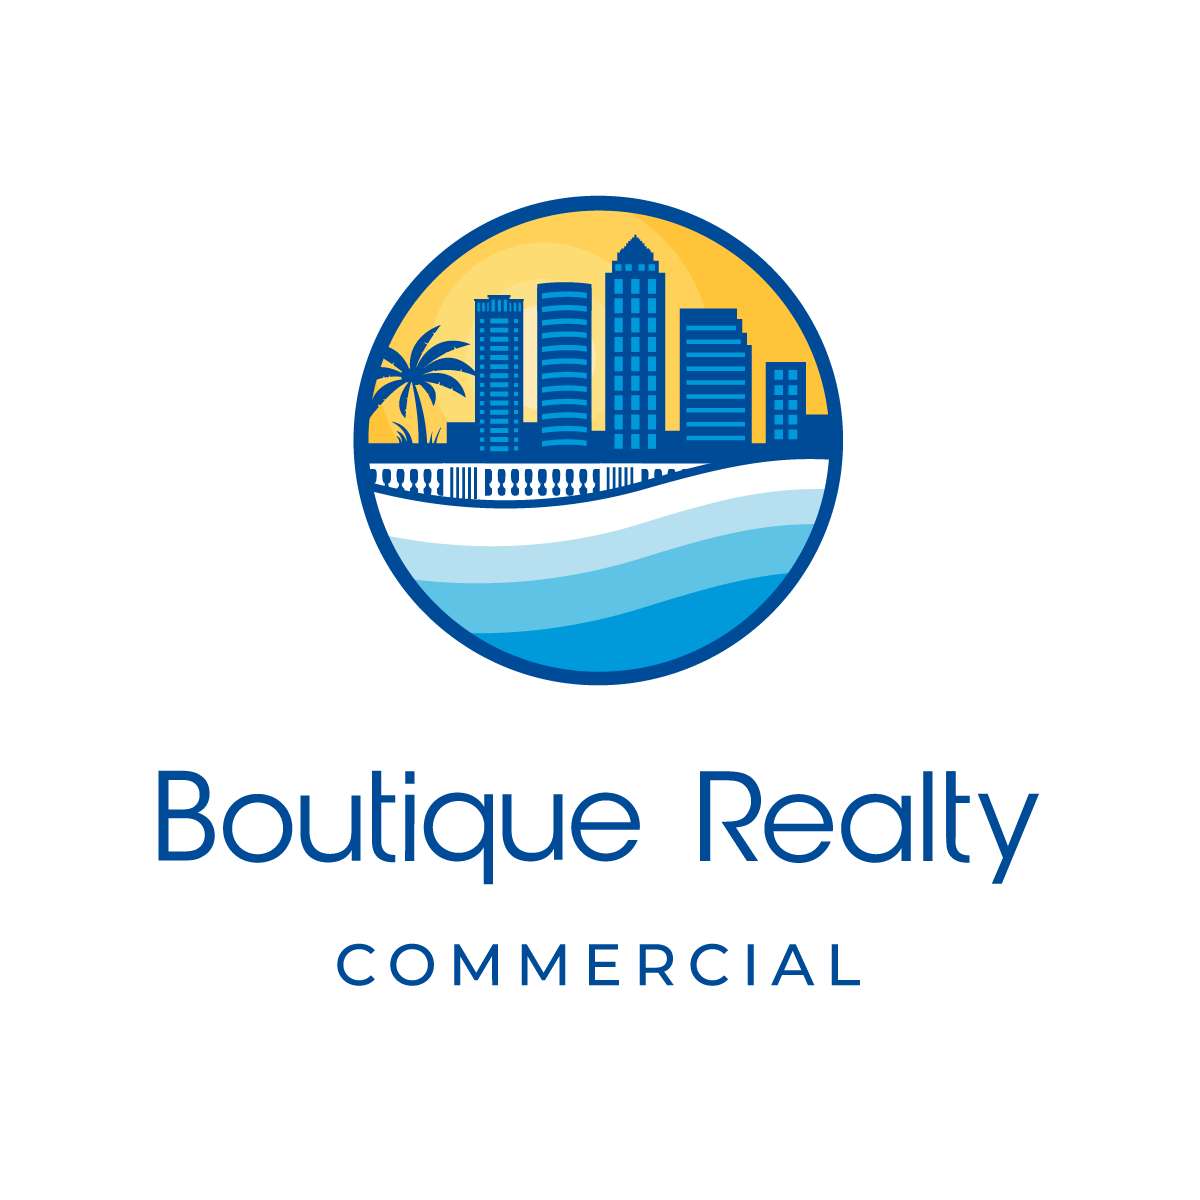 Boutique_Realty_Commercial_2018_Web.png